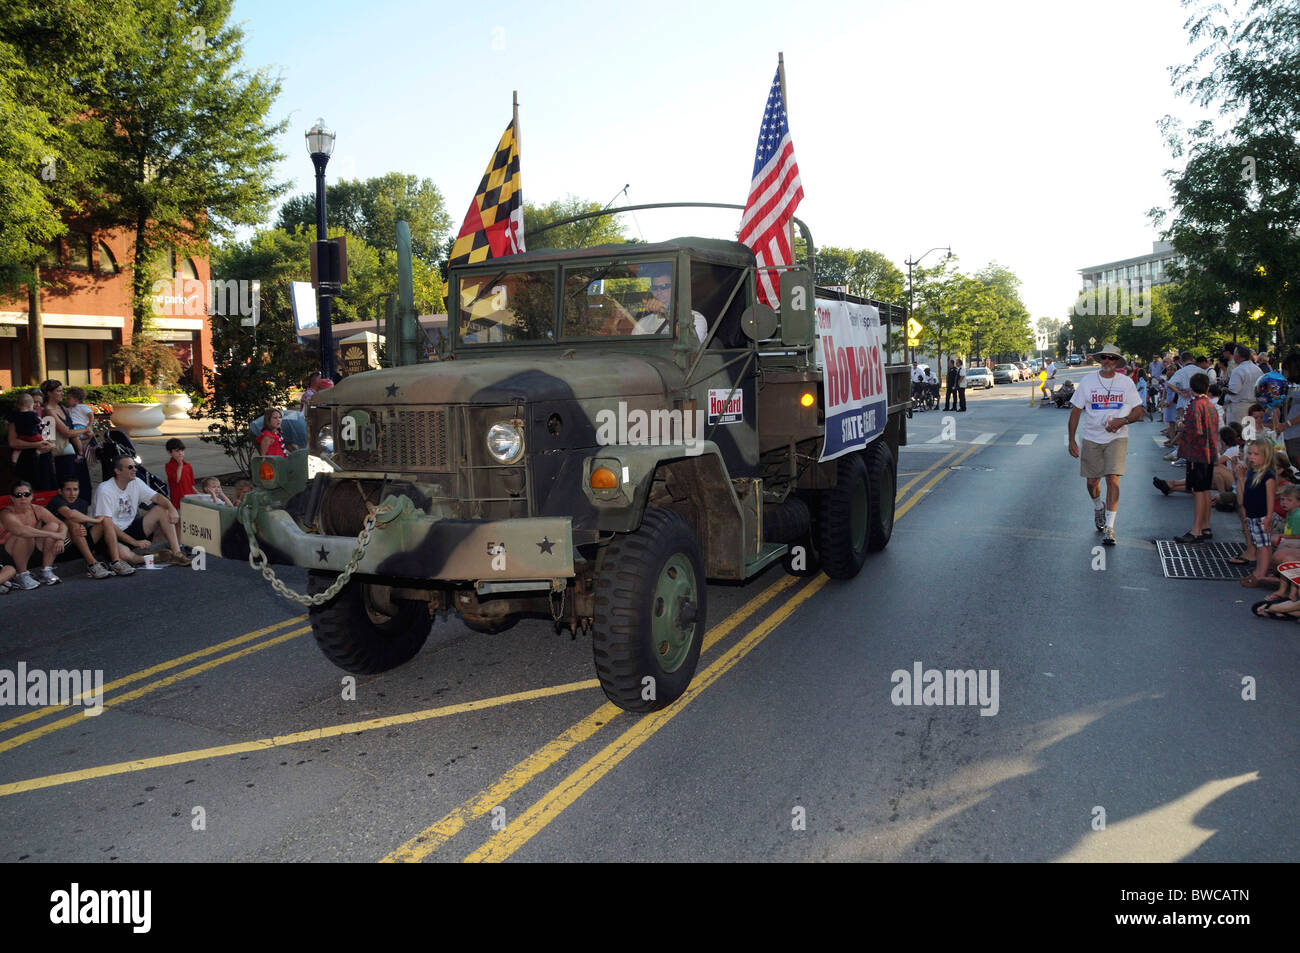 a military truck is used to advertise a politician in a July4 parade in Annapolis,Md - Stock Image